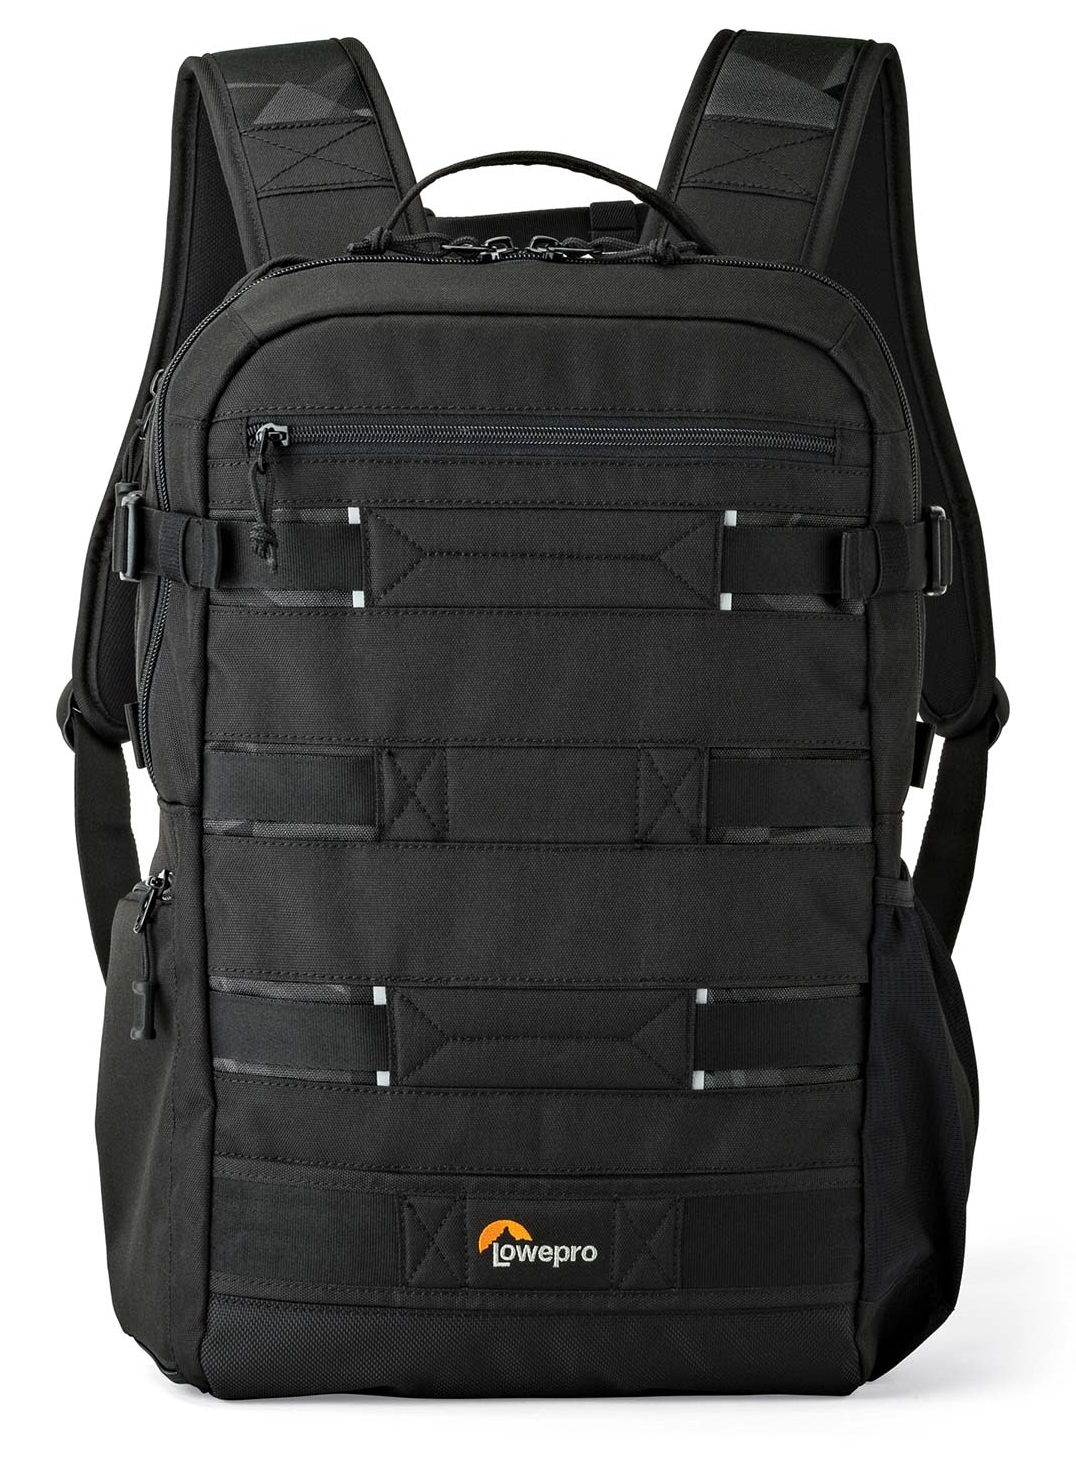 Part of the new Viewpoint series from Lowepro.